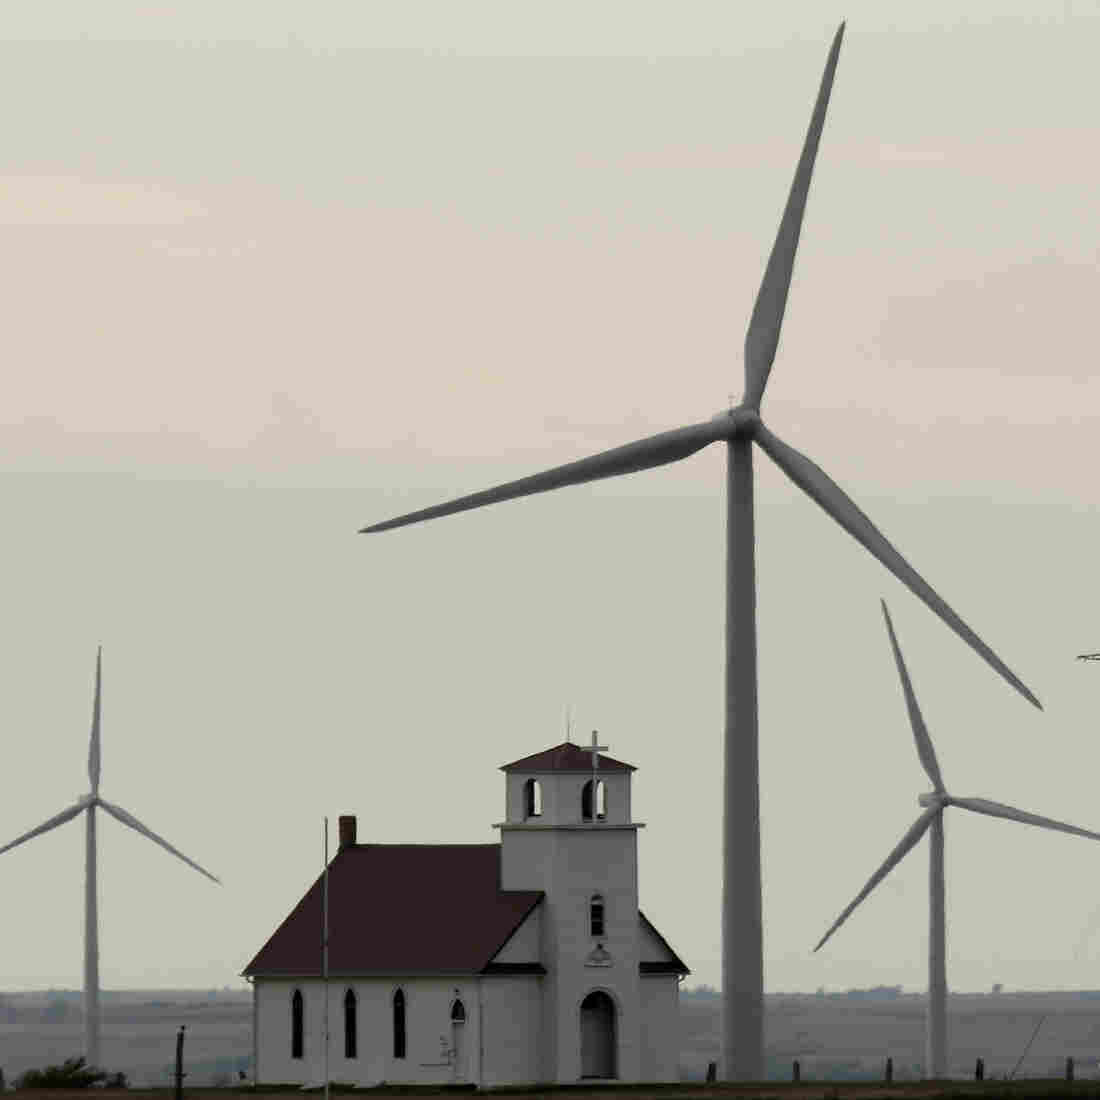 Wind Industry Secures Tax Credit, But Damage May Be Done